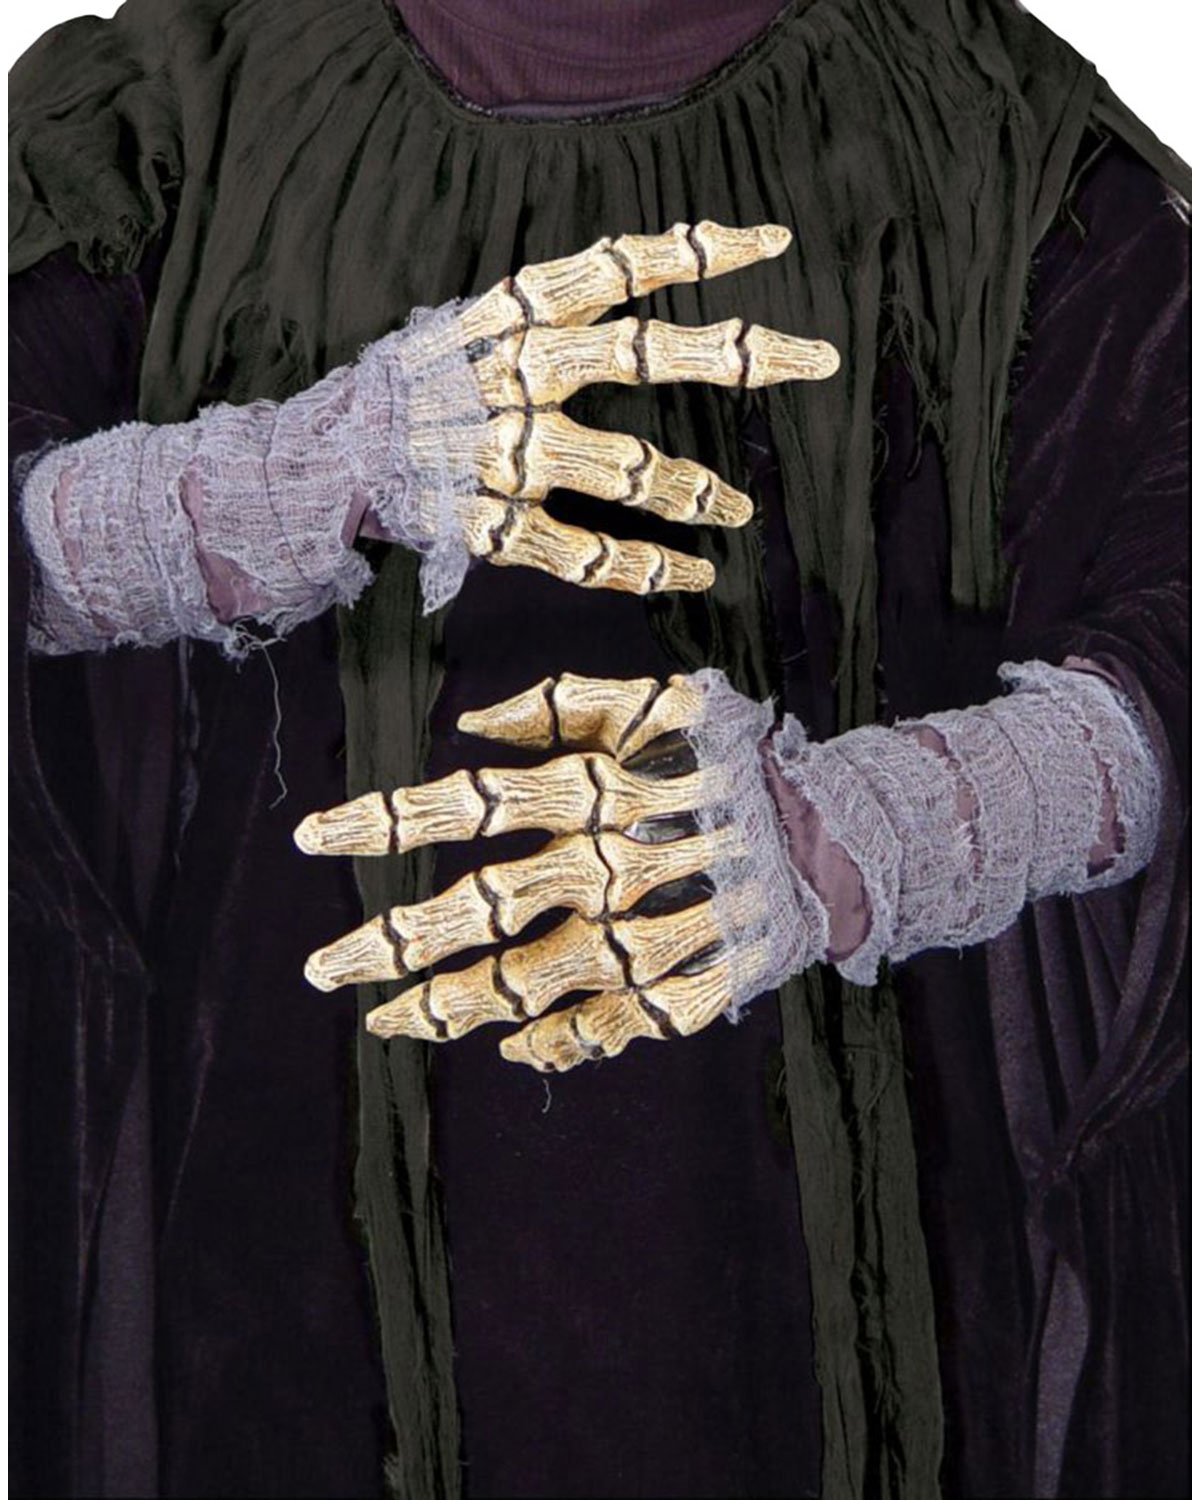 MR156001 Morris Costumes Unique Creepy Latex Open Palm Design Hands Bones